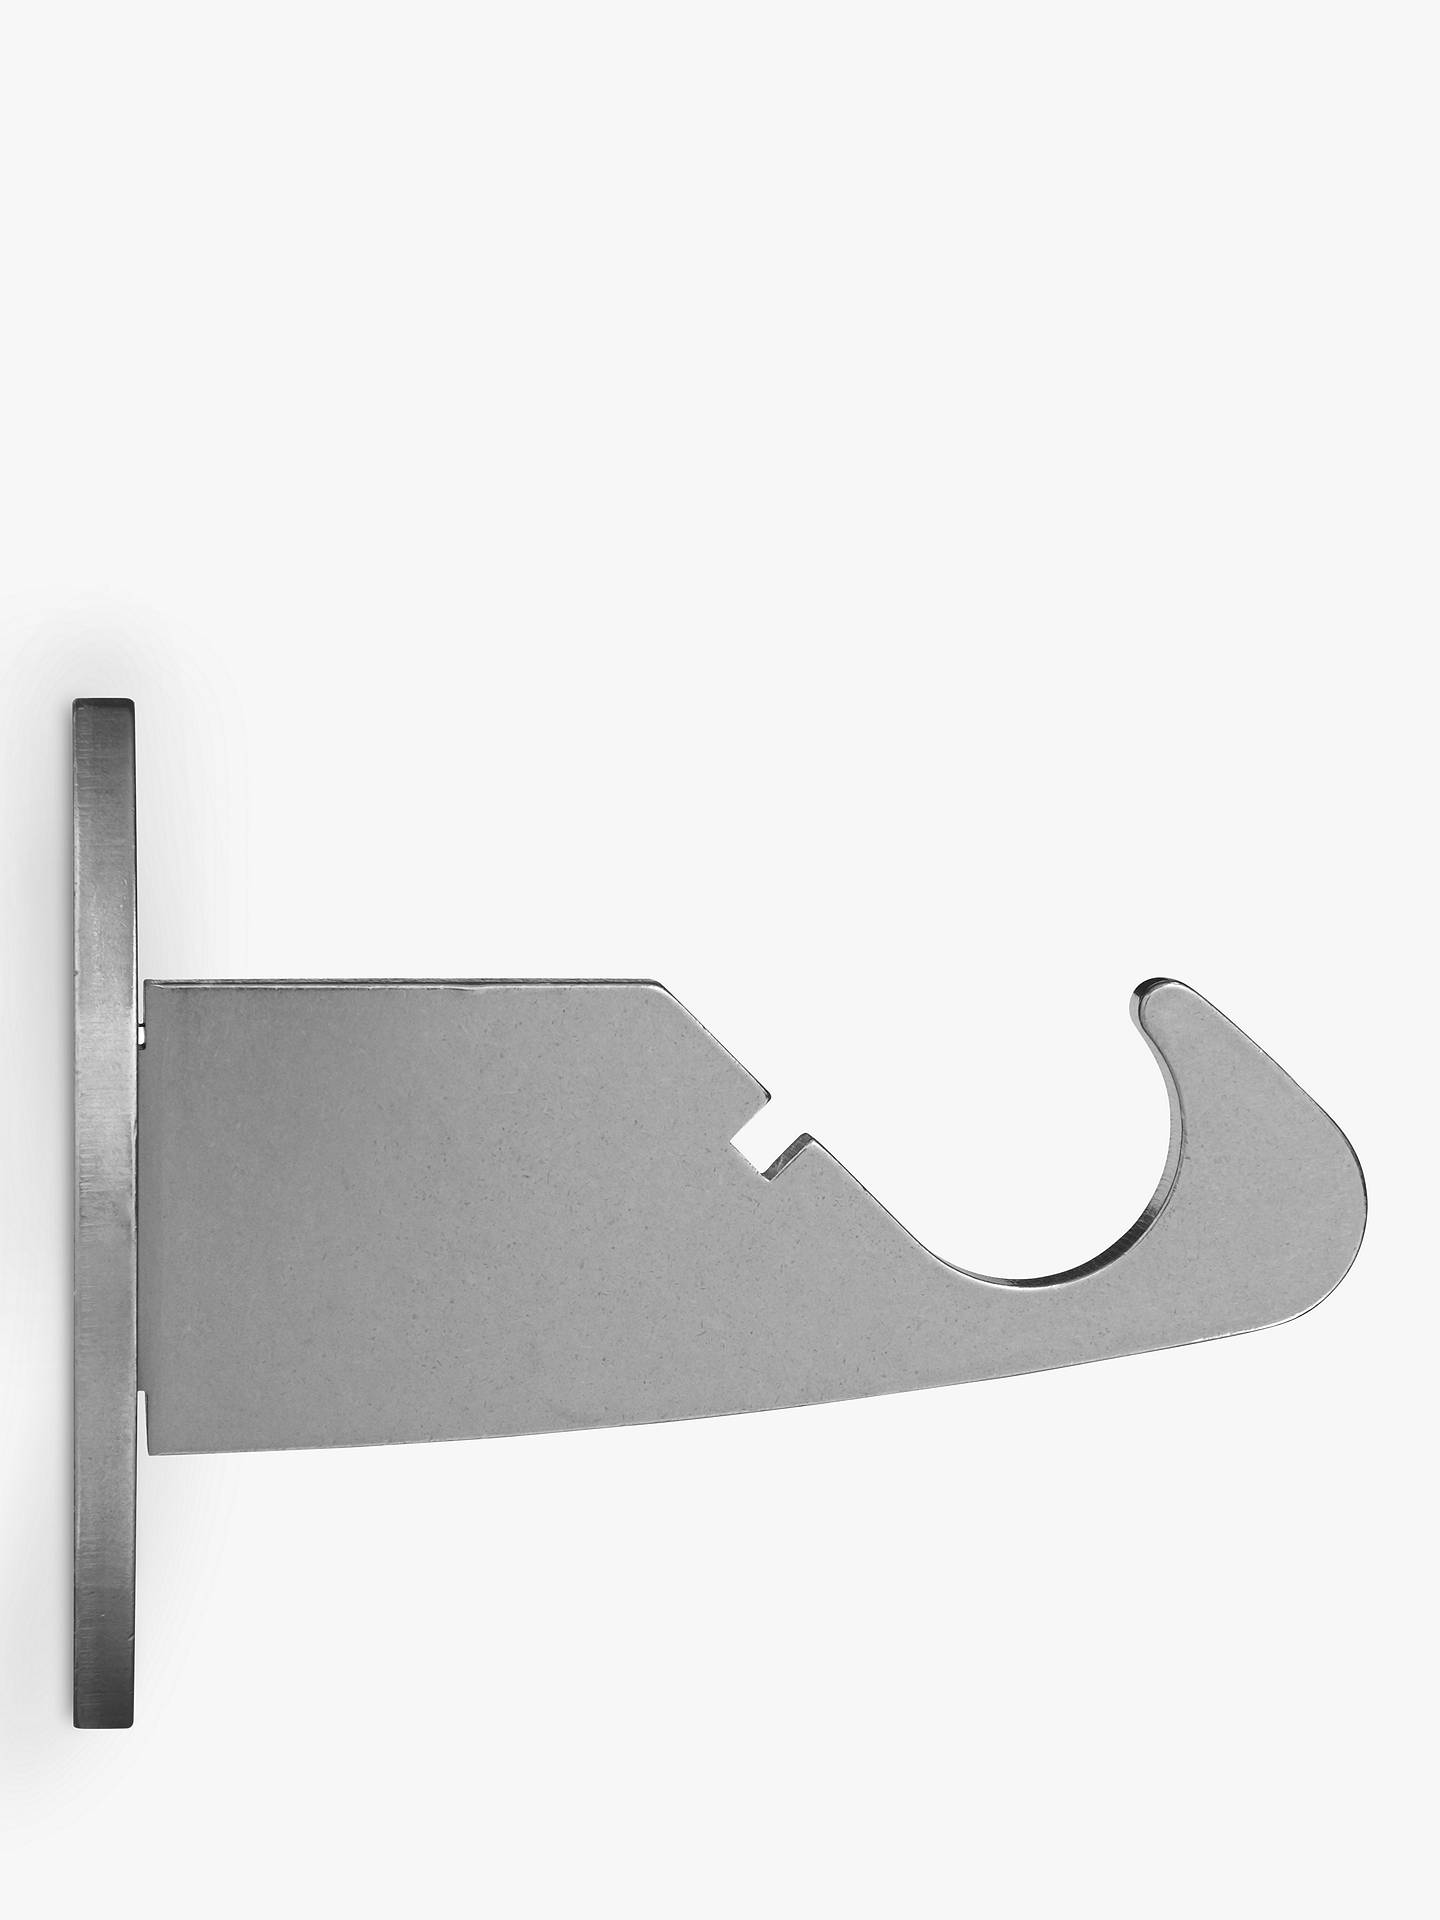 BuyJohn Lewis & Partners Stainless Steel Side Bracket, Dia.19mm Online at johnlewis.com